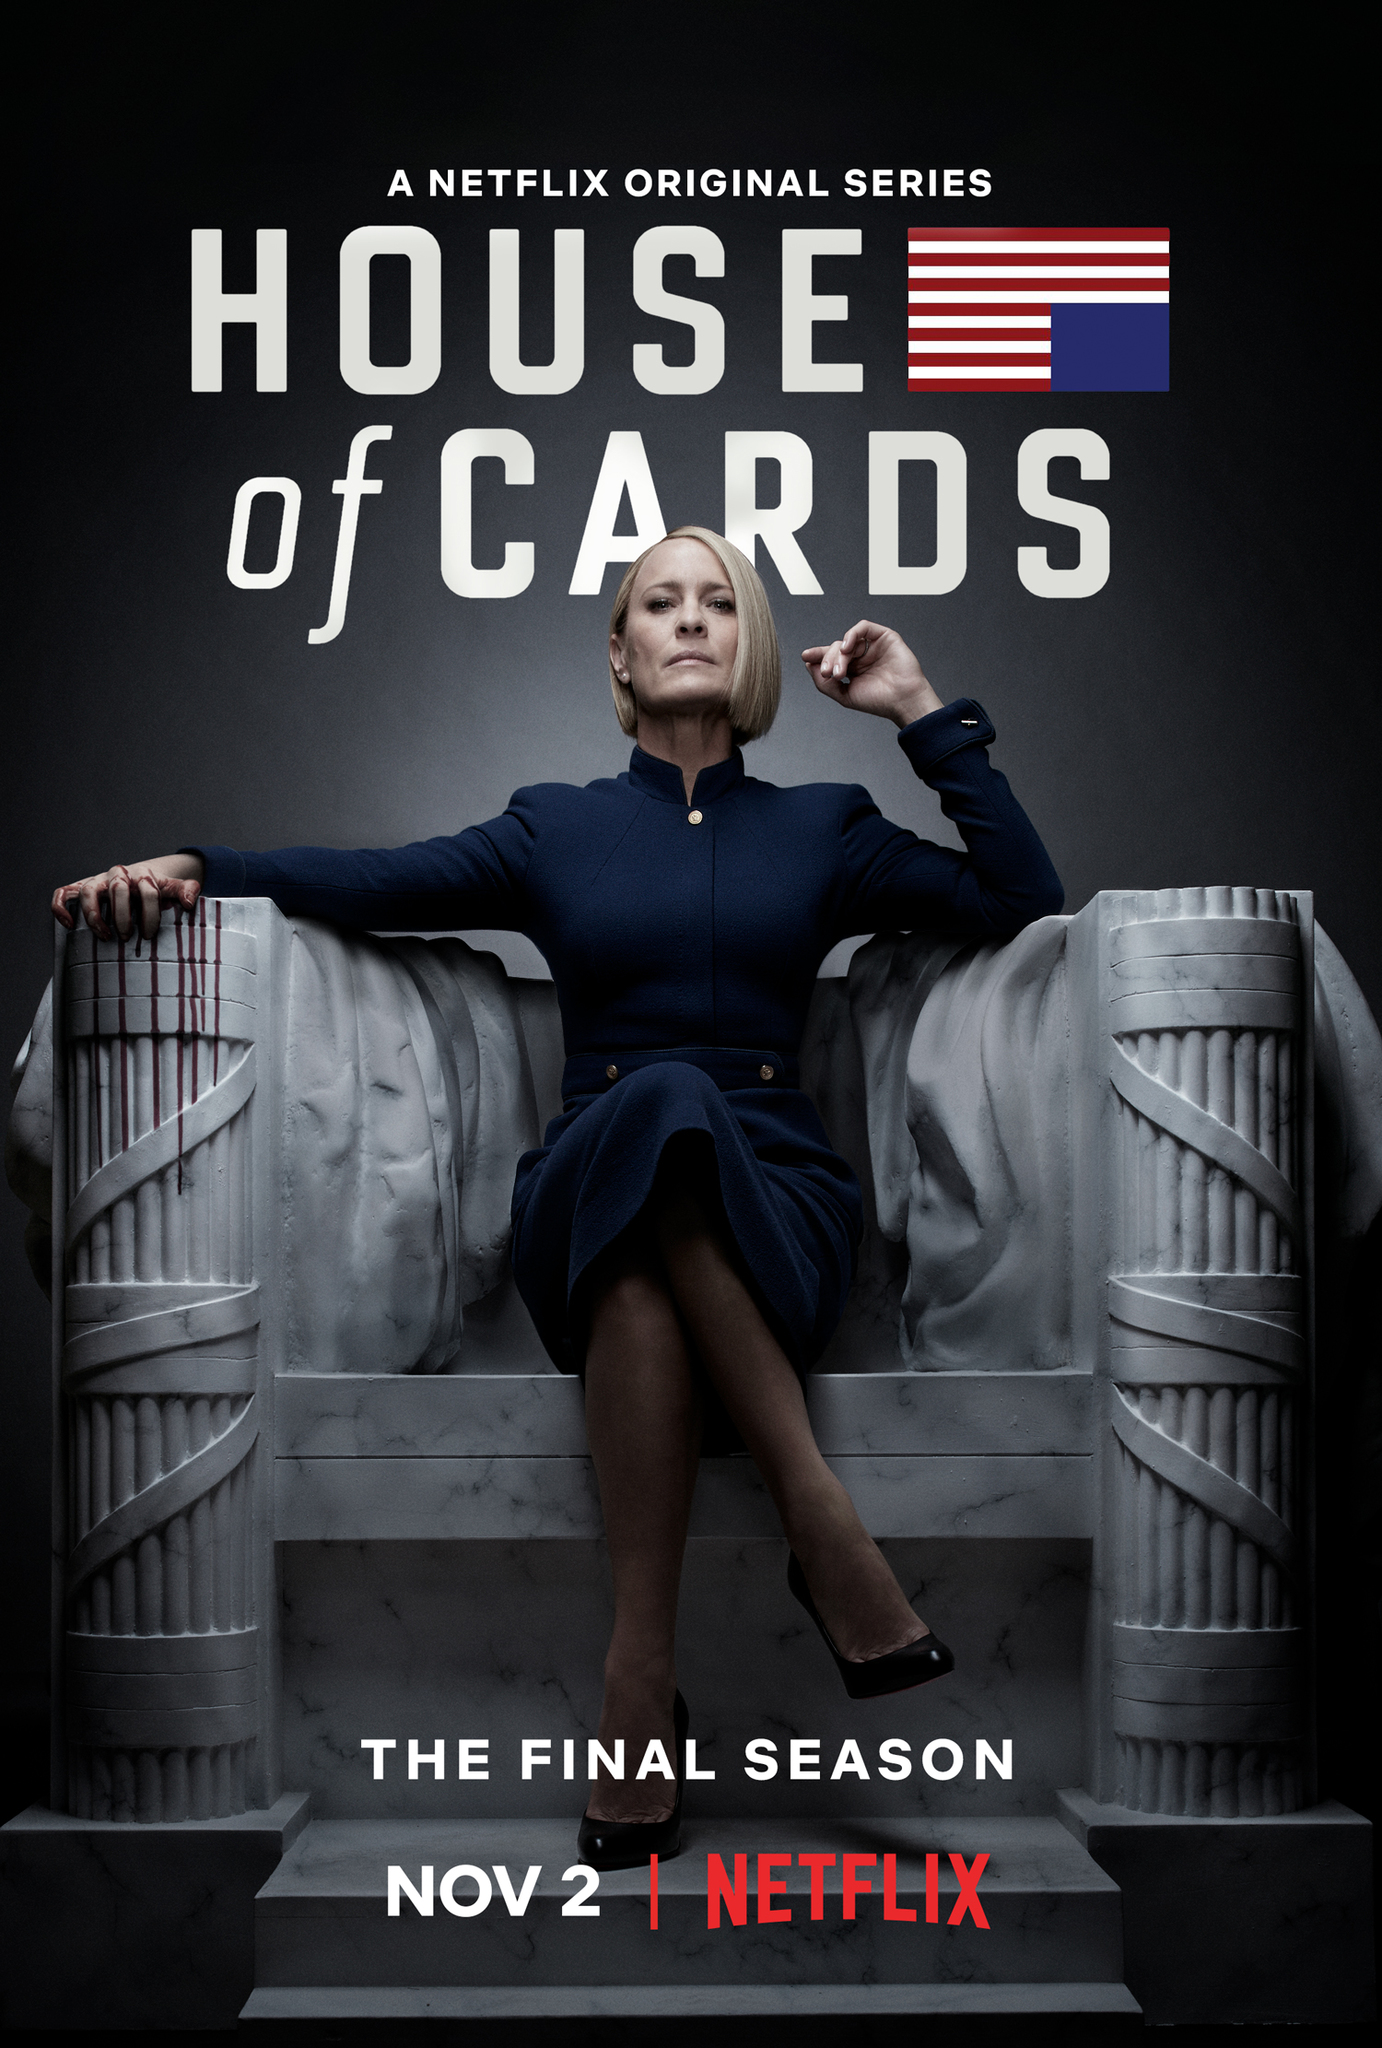 House of Cards Season 6 COMPLETE WEBRip 480p, 720p, 1080p & 4K-2160p